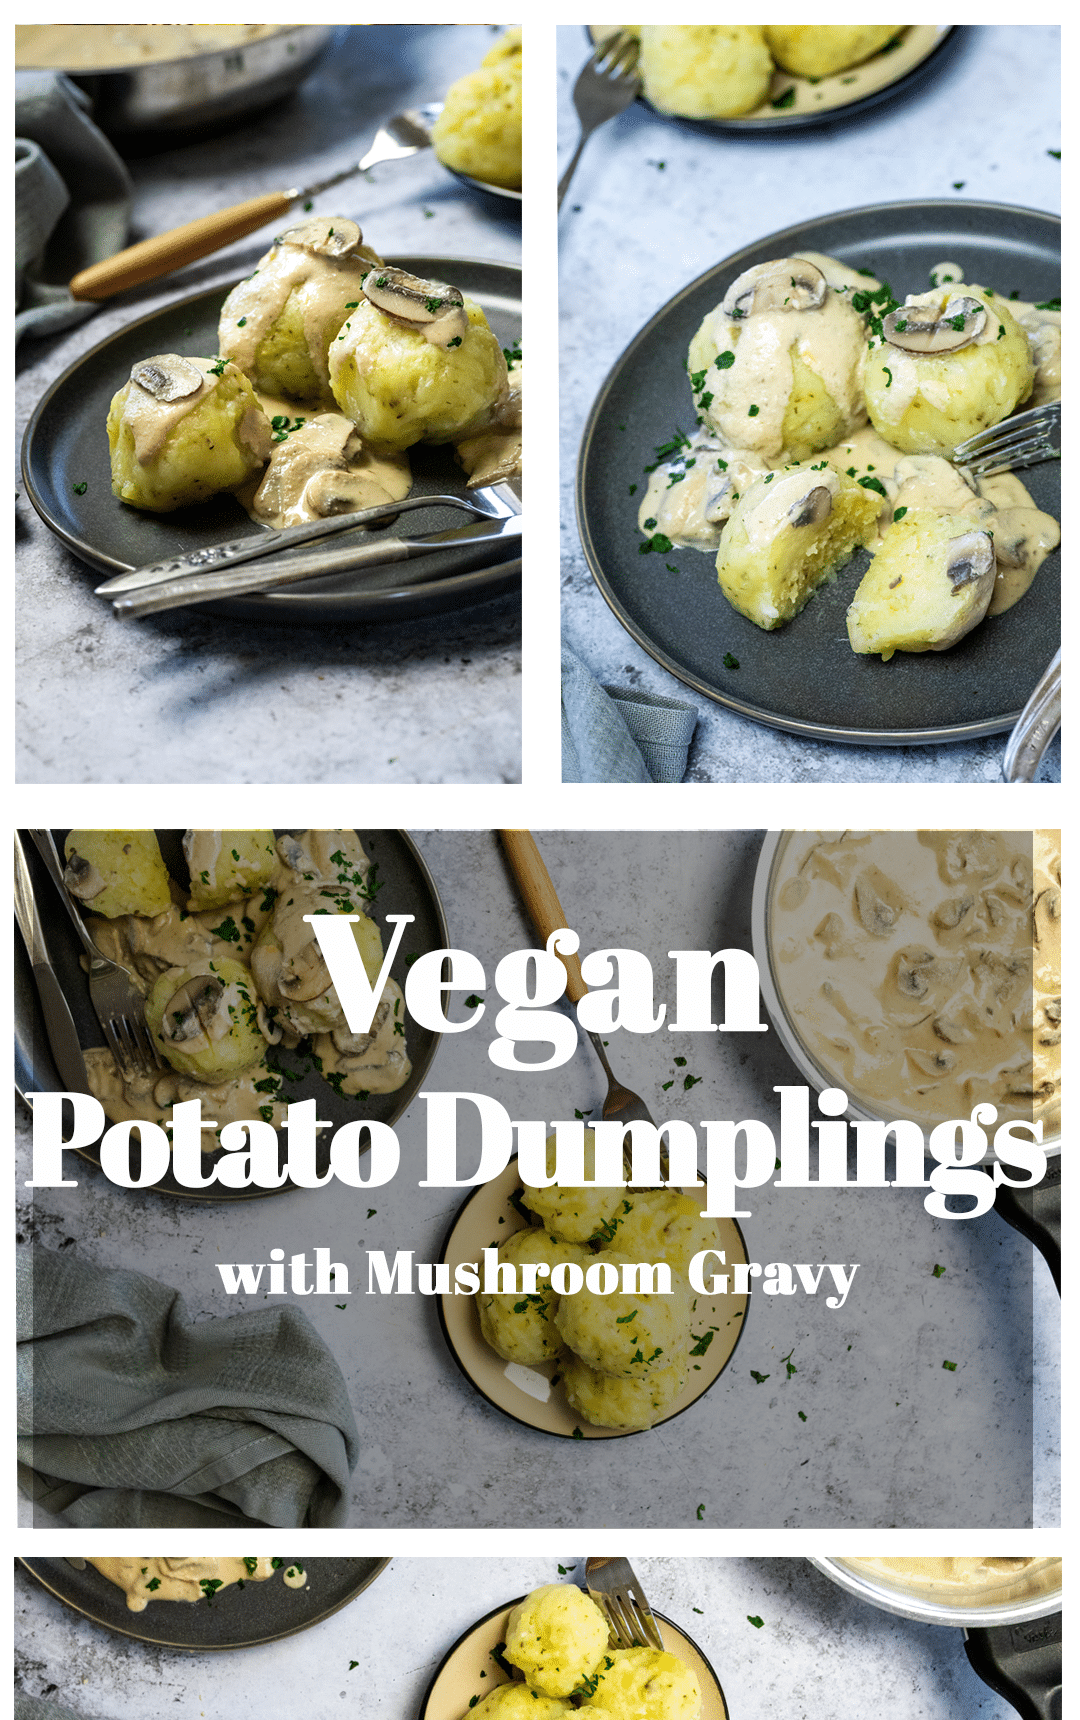 Graphic of vegan potato dumplings with cream mushroom sauce